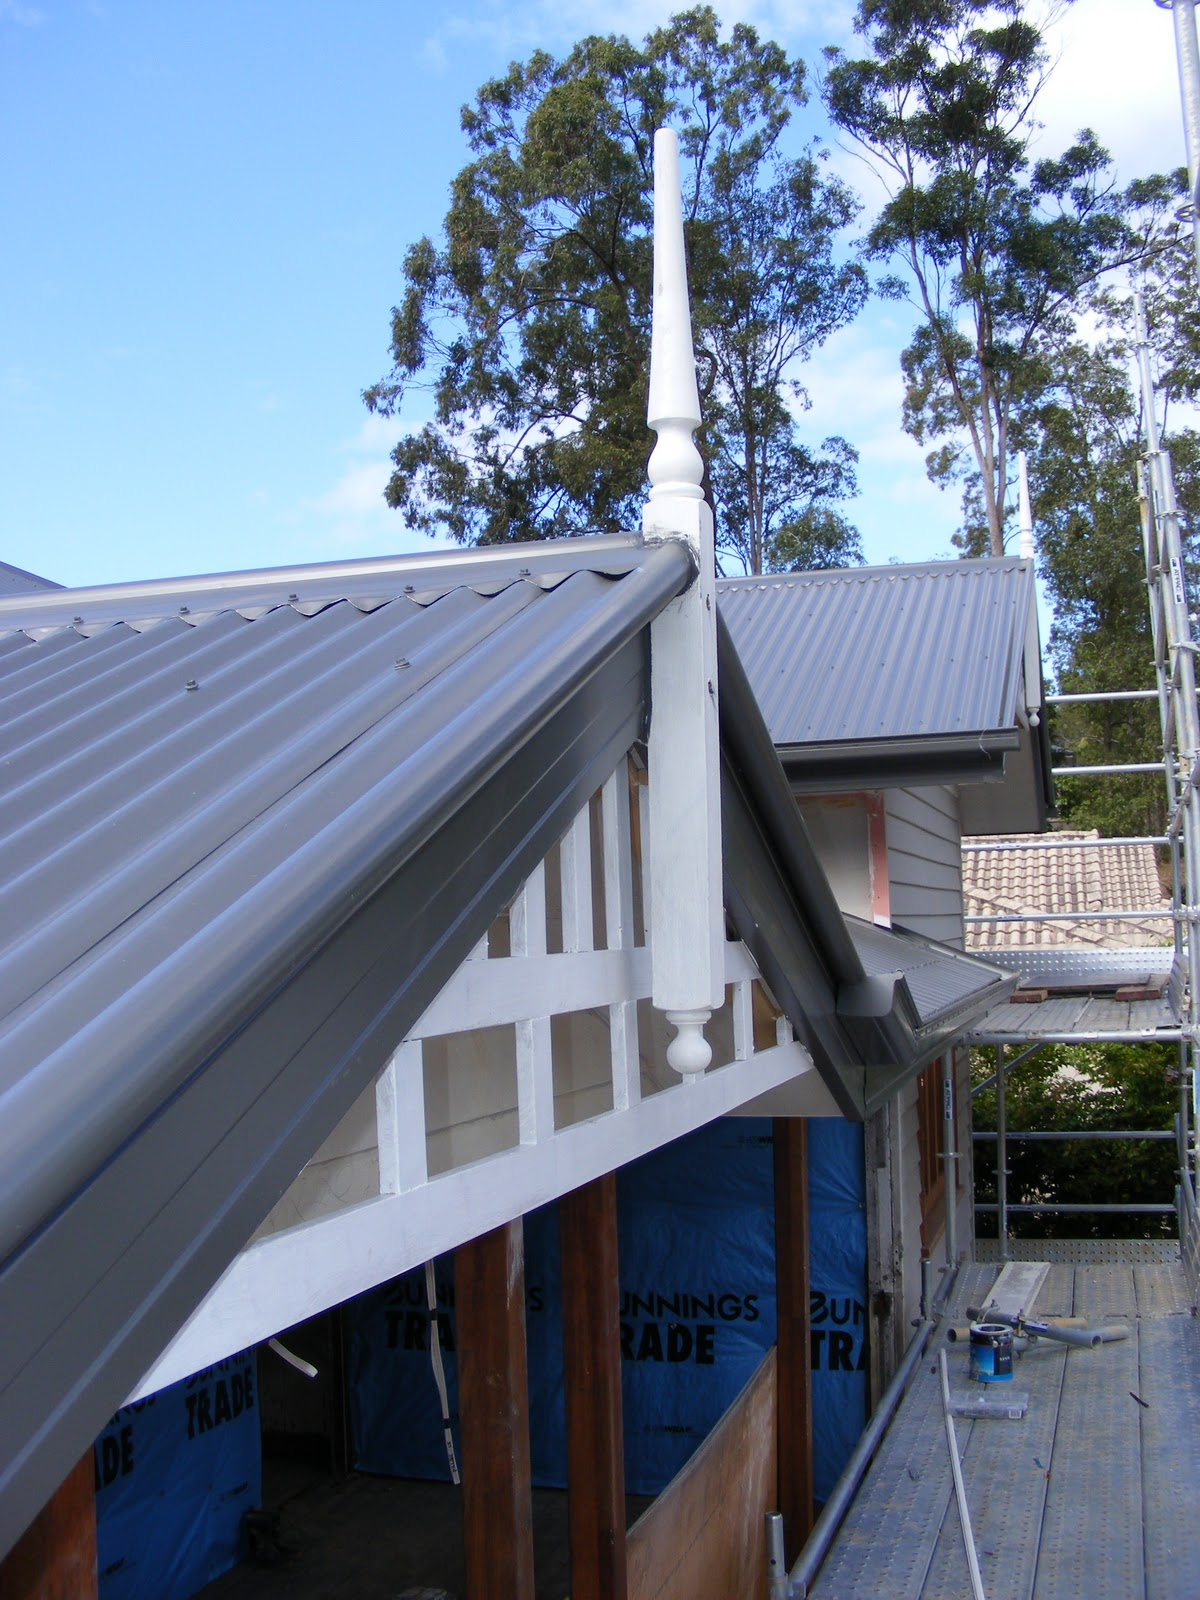 Bunnings Eco Deck It Started With A Doorknocker